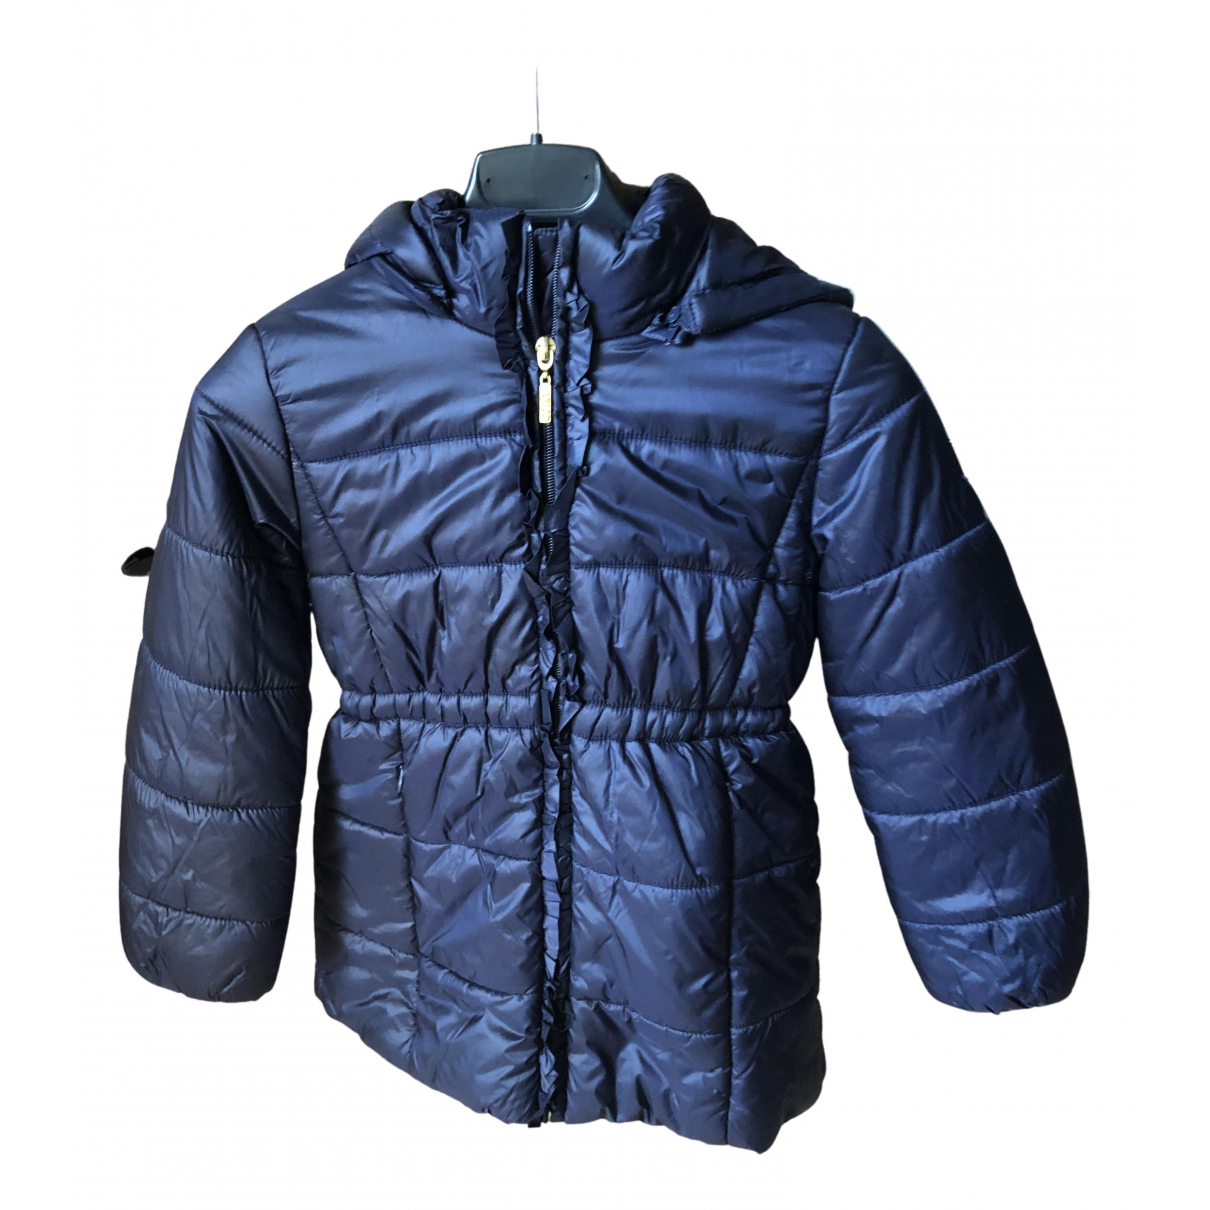 Liu.jo N Blue jacket & coat for Kids 6 years - up to 114cm FR